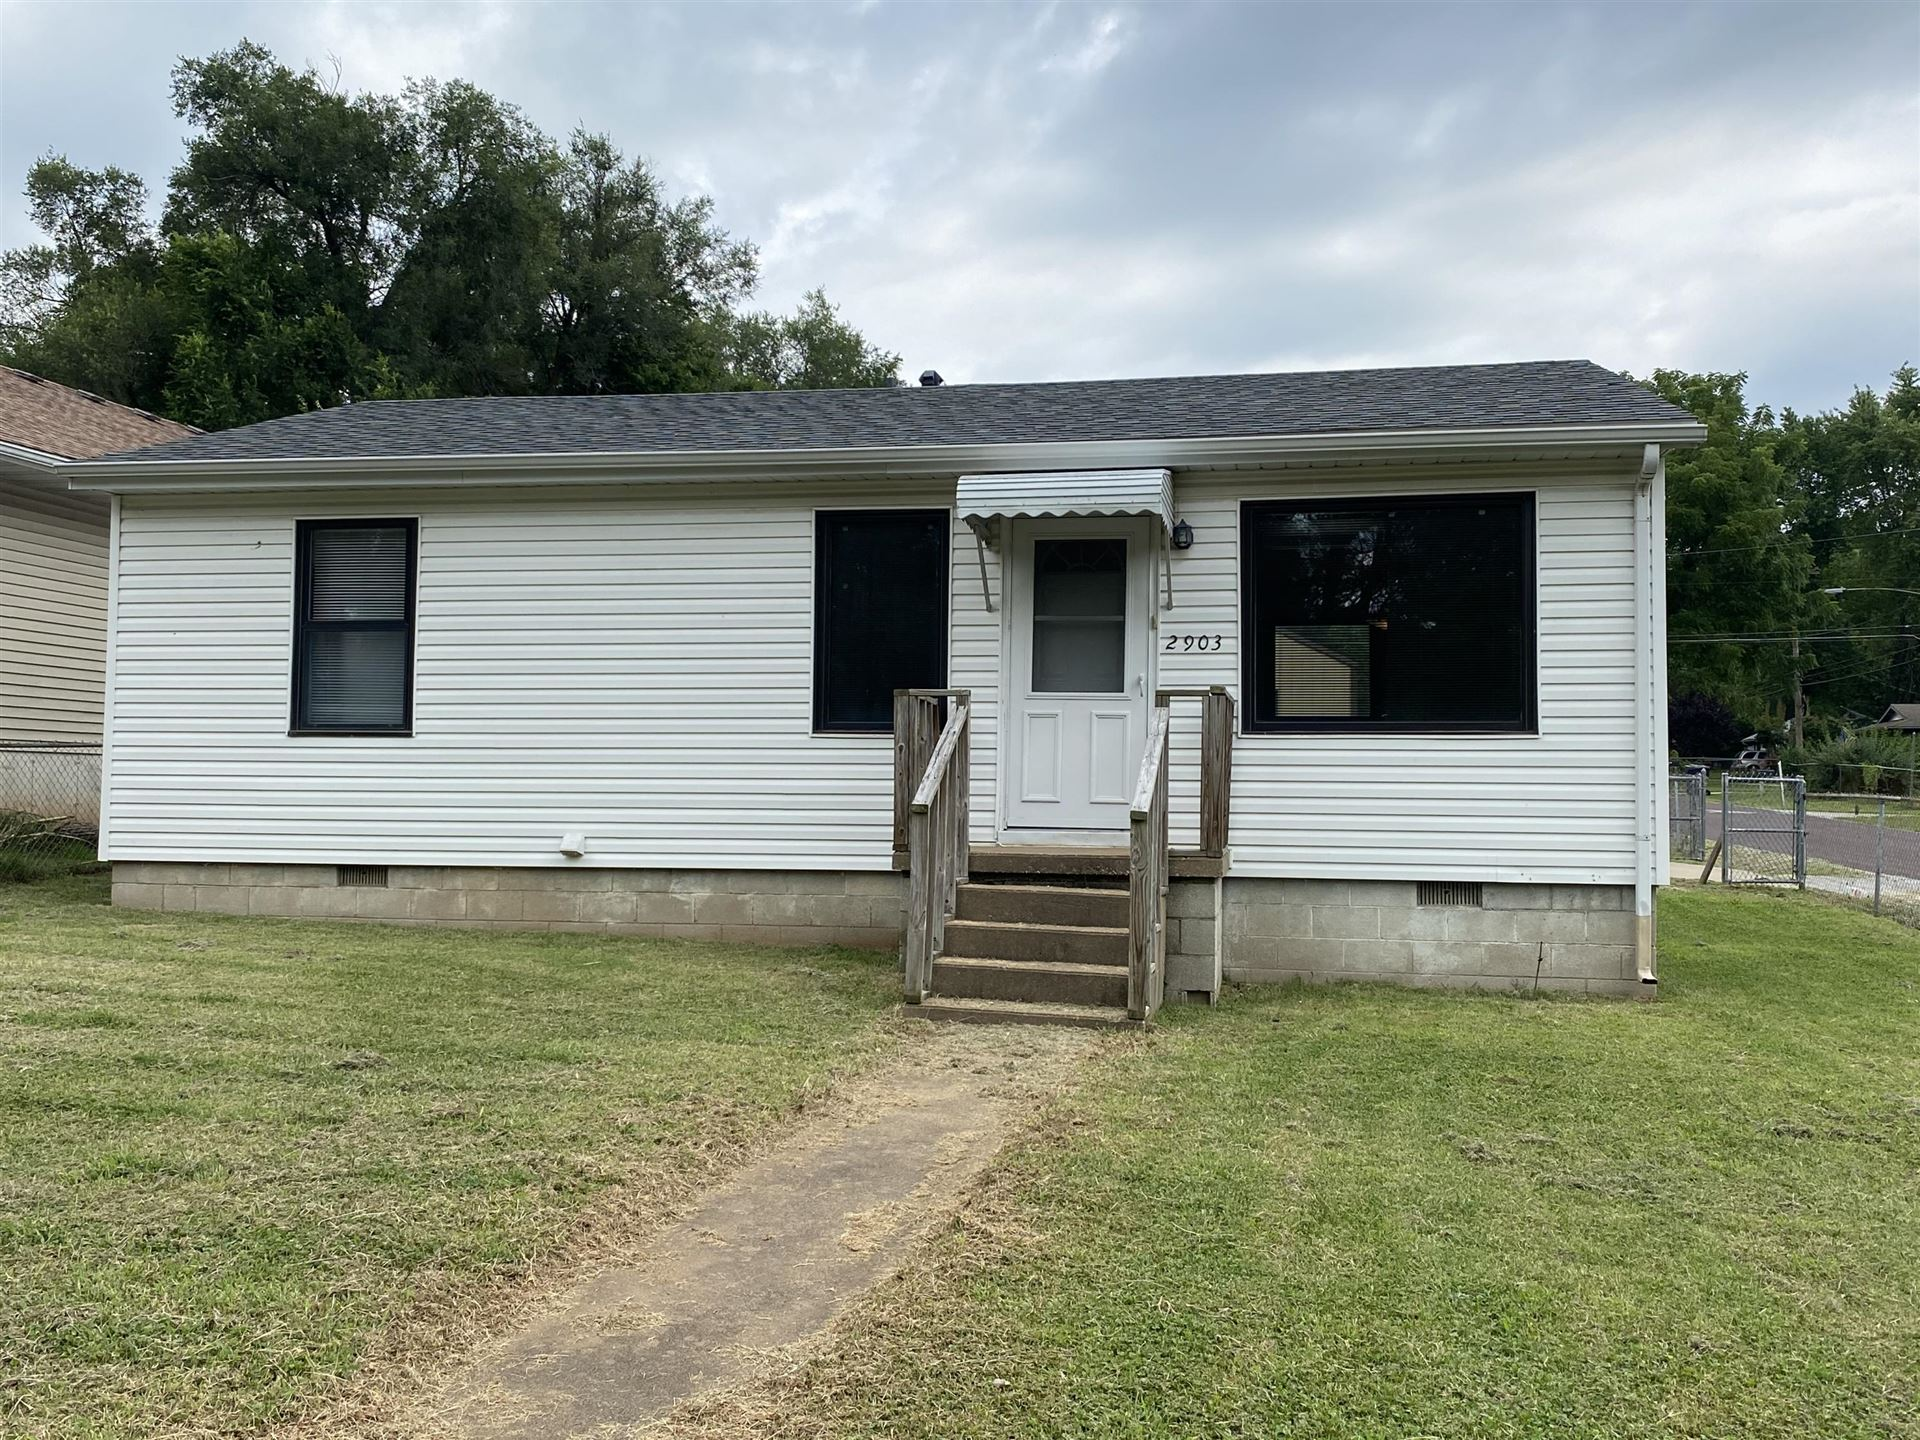 Photo of 2903 West Lombard Street, Springfield, MO 65802 (MLS # 60197636)